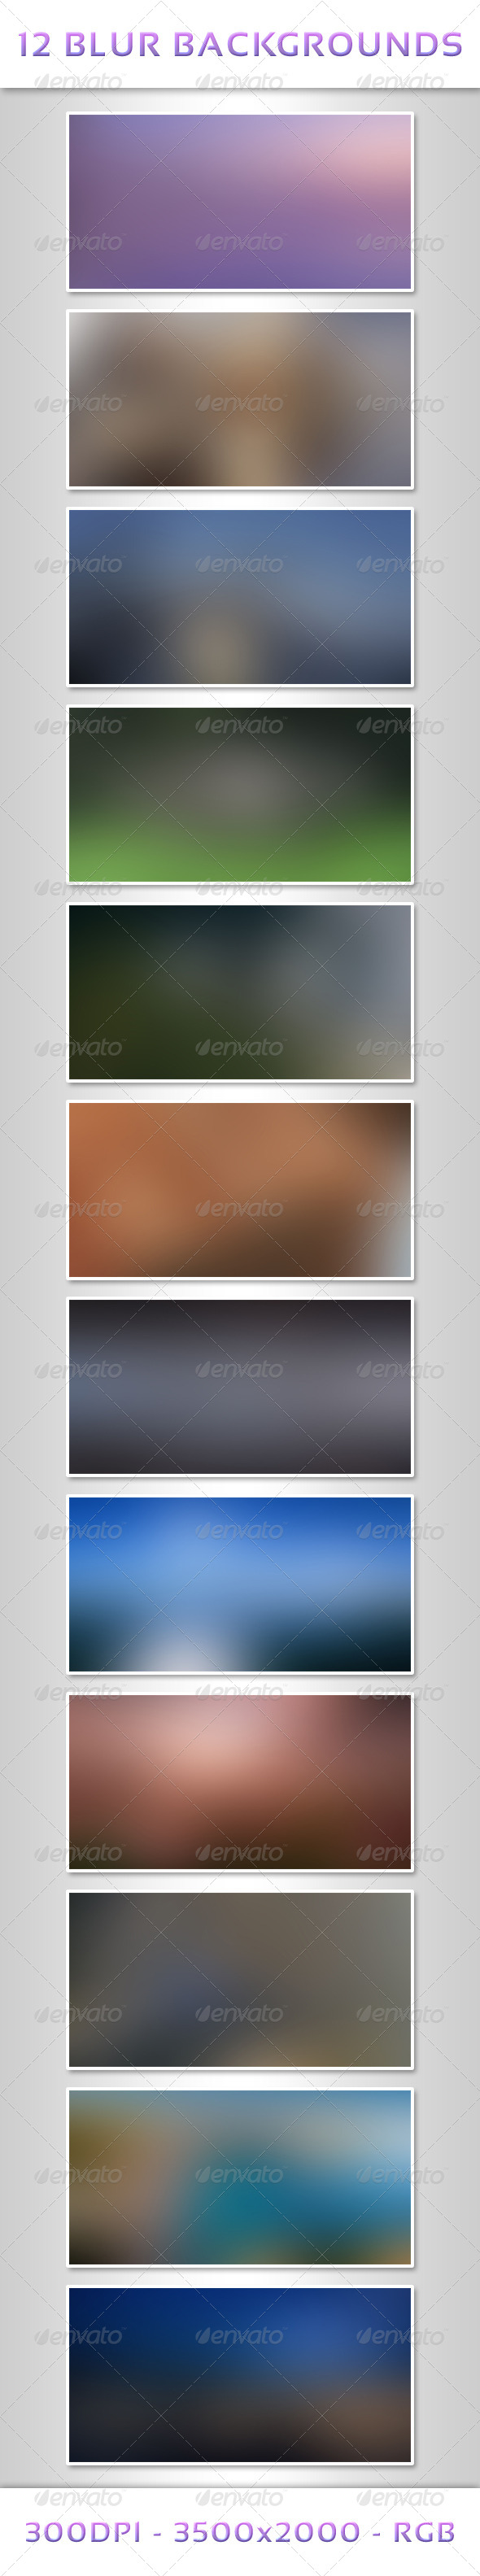 12 Blur Backgrounds - Abstract Backgrounds